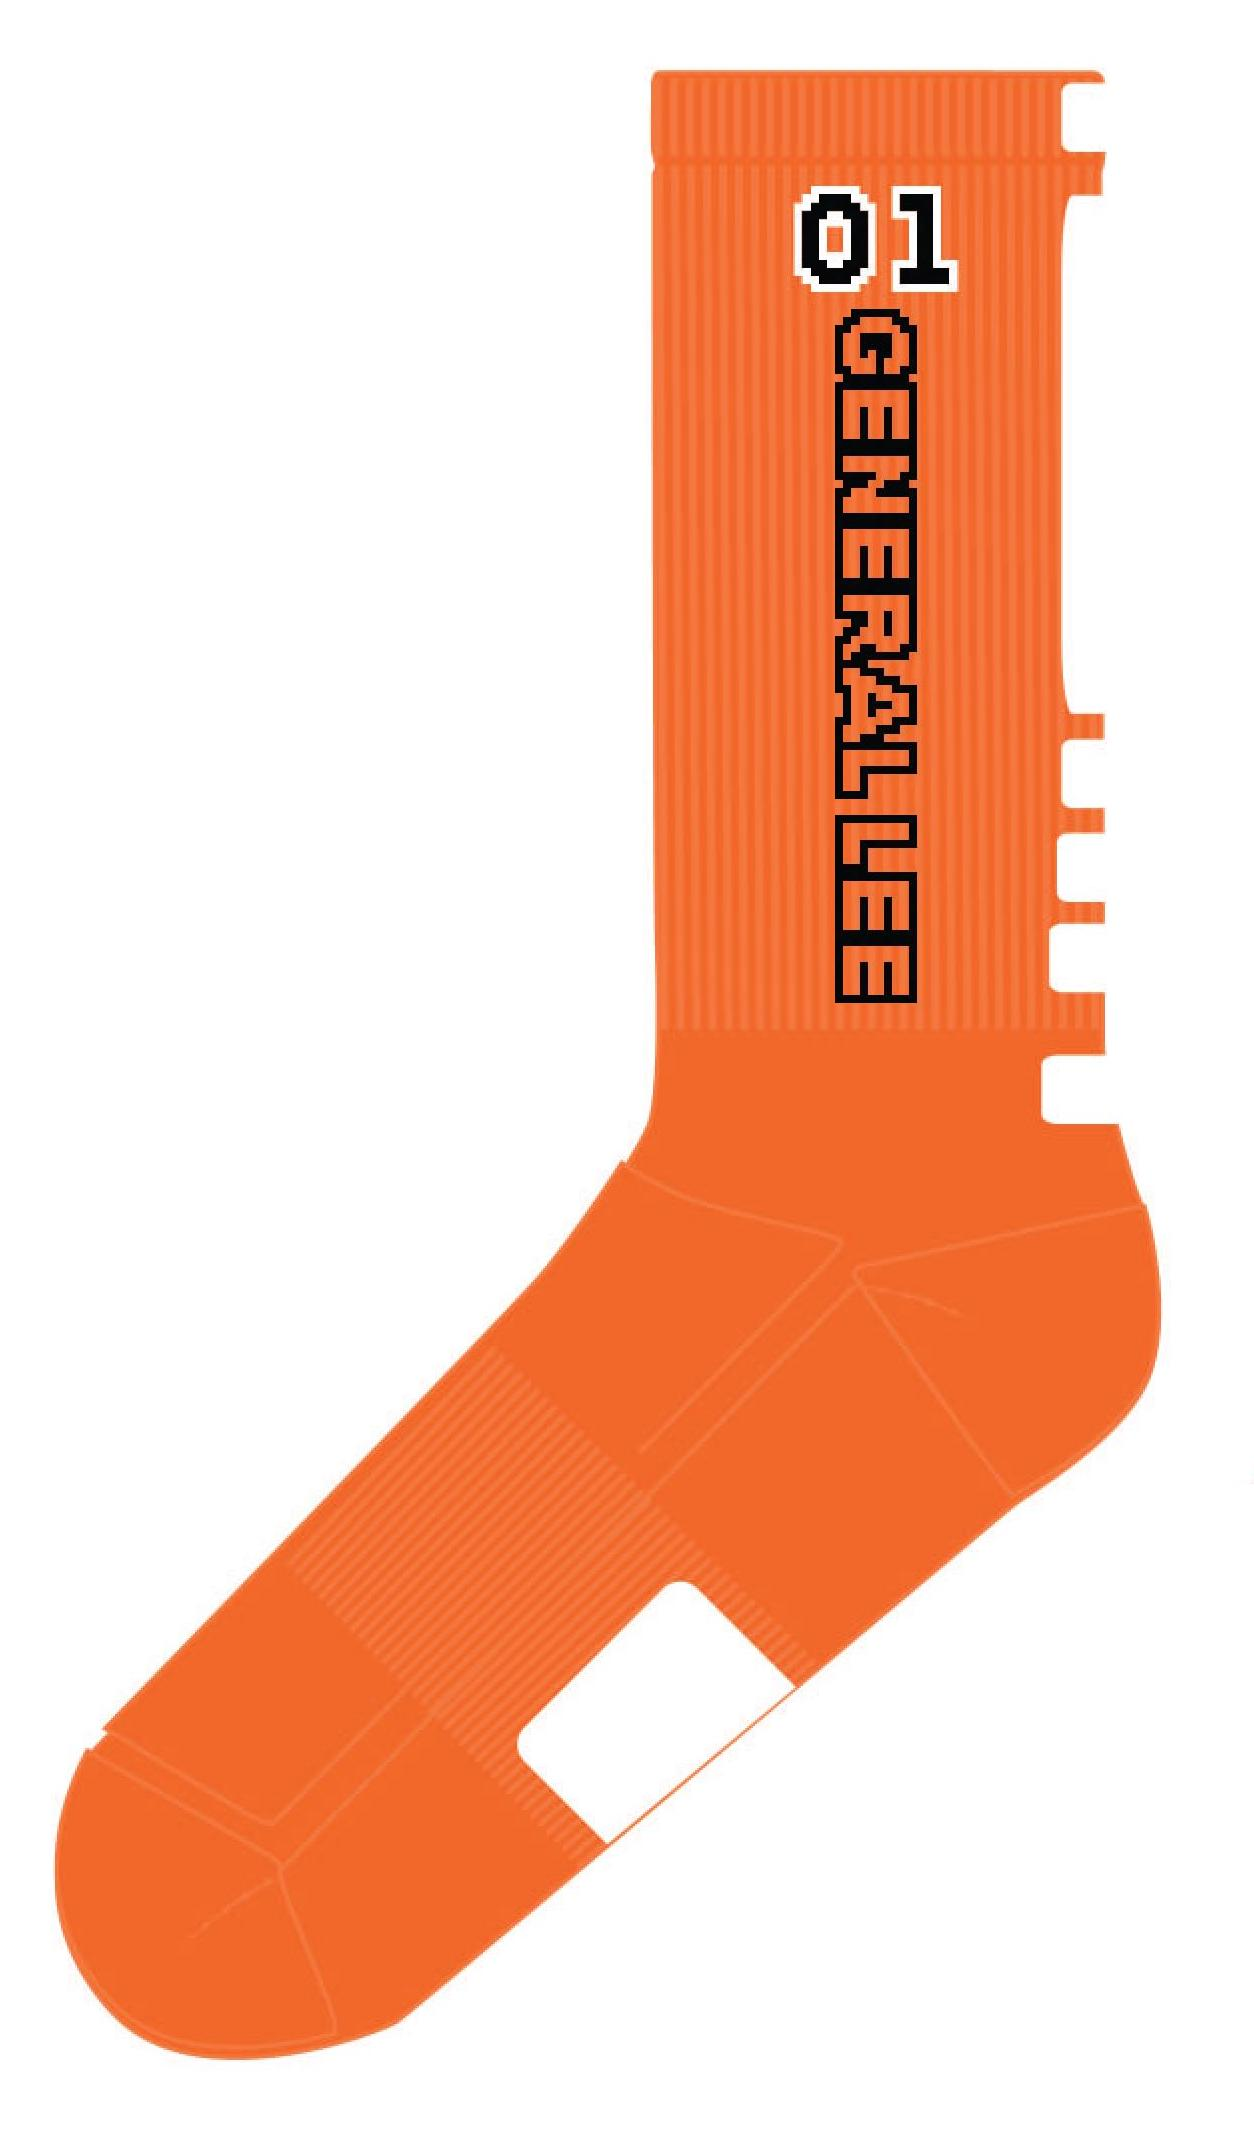 1254x2136 Cooter's 01 High Performance Socks (Orange)